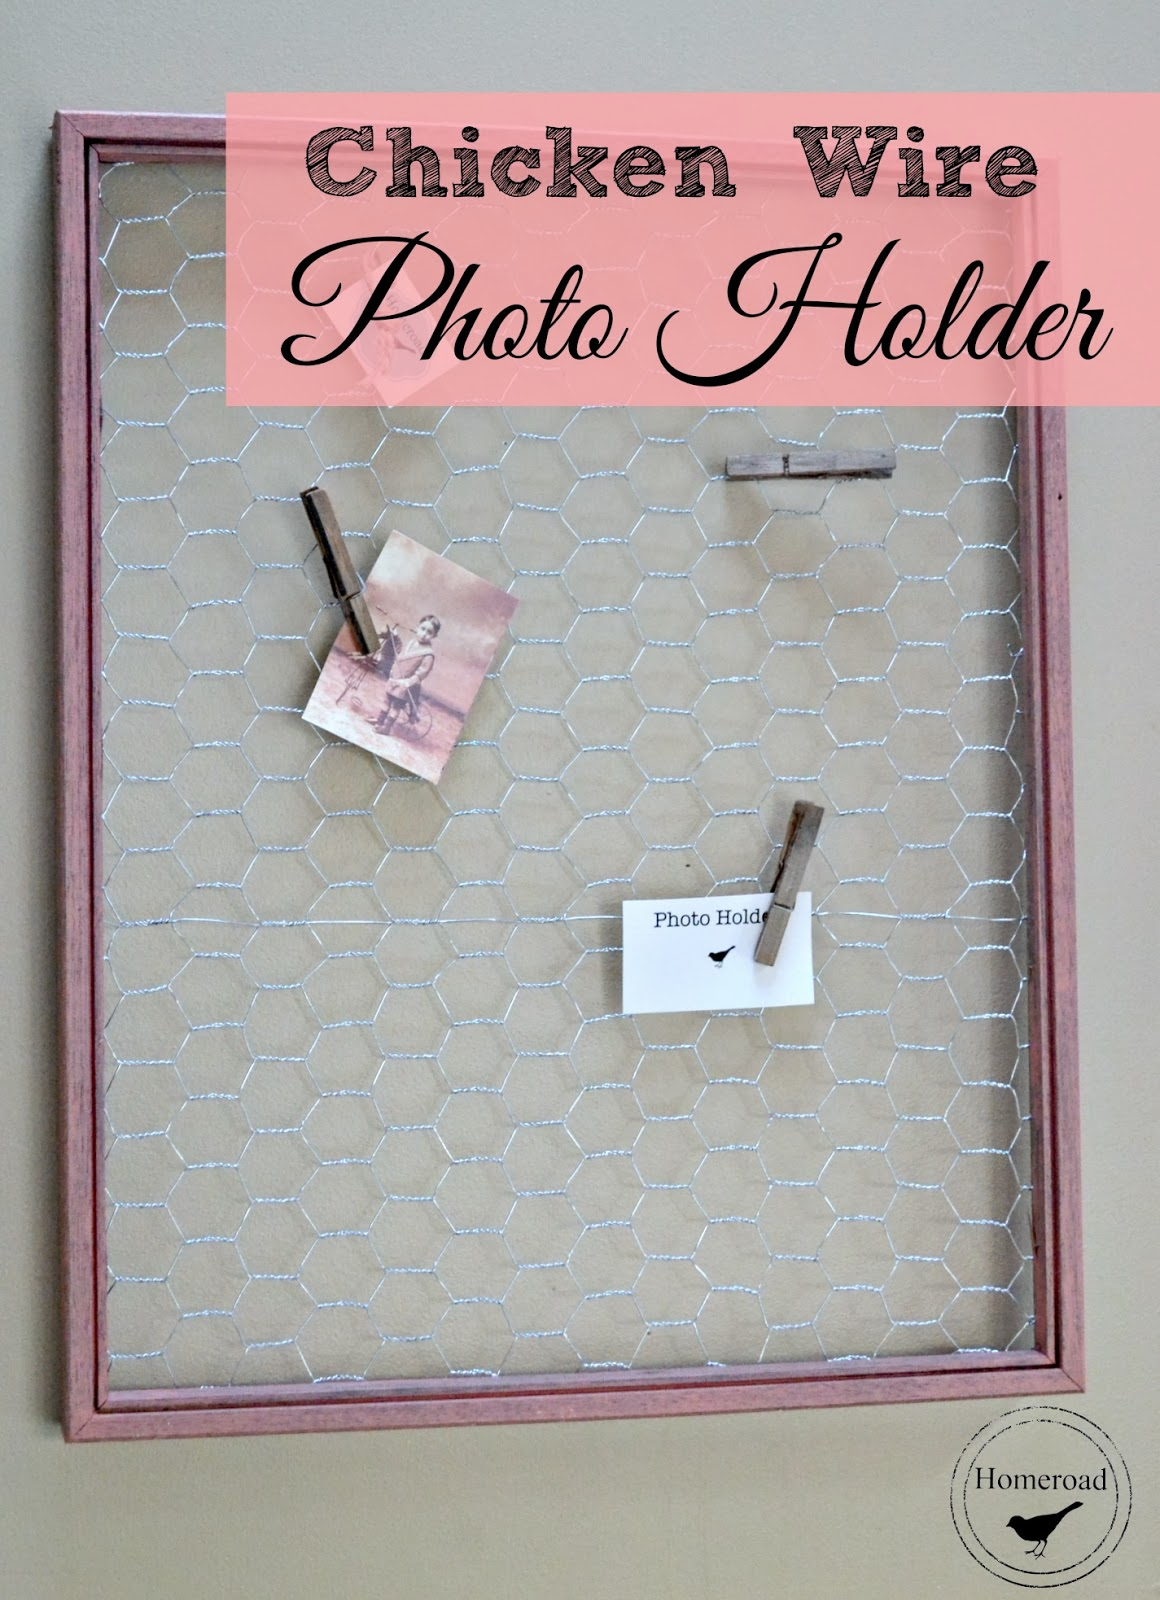 chicken wire photo holder www.homeroad.net